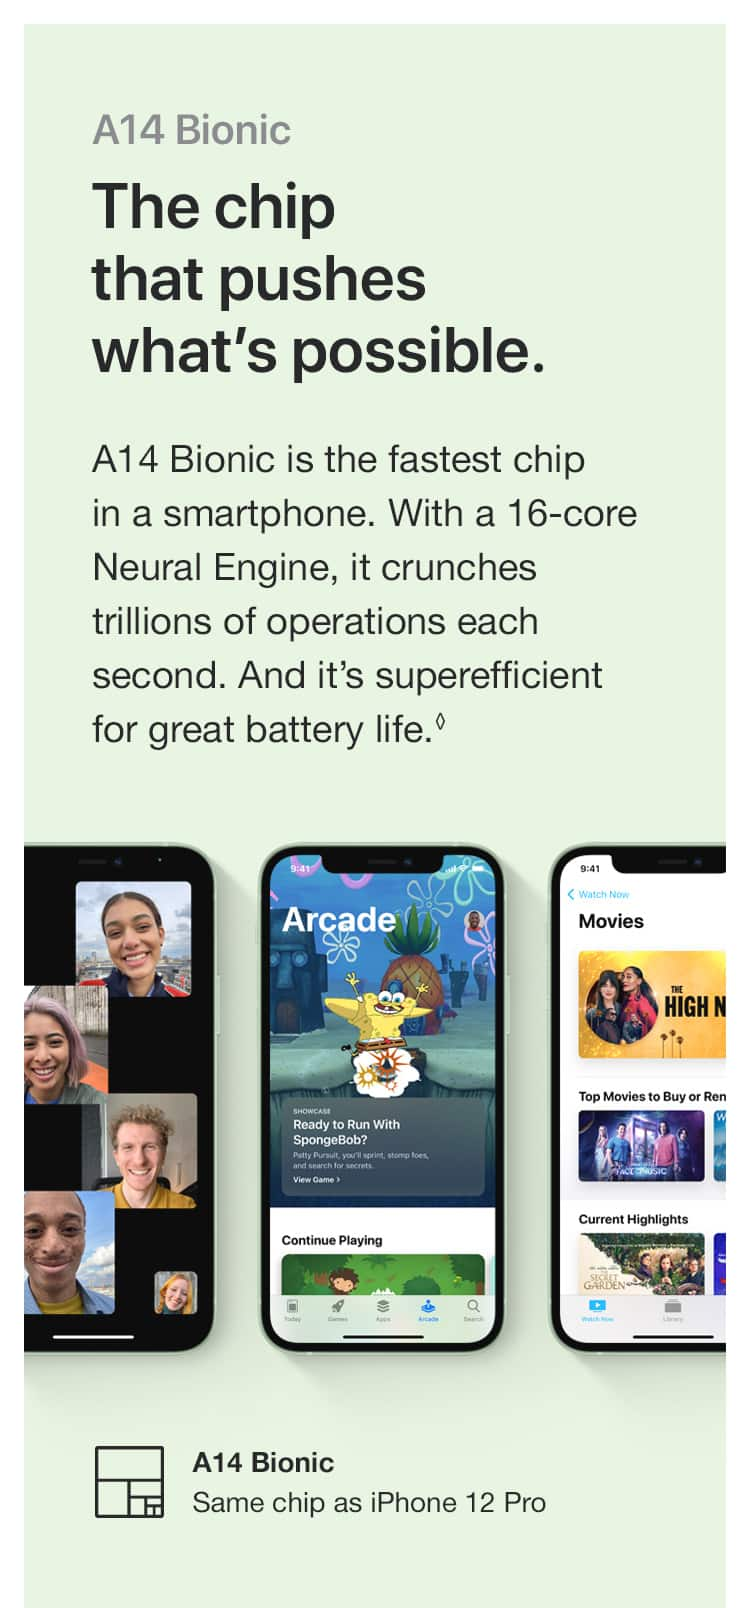 A14 Bionic. The chip that pushes what's possible. A14 Bionic is the fastest chip in a smartphone. With a 16-core Neural Engine, it crunches trillions of operations each second. And it's superefficient for great battery life.(♢) A14 Bionic - Same chip as iPhone 12 Pro